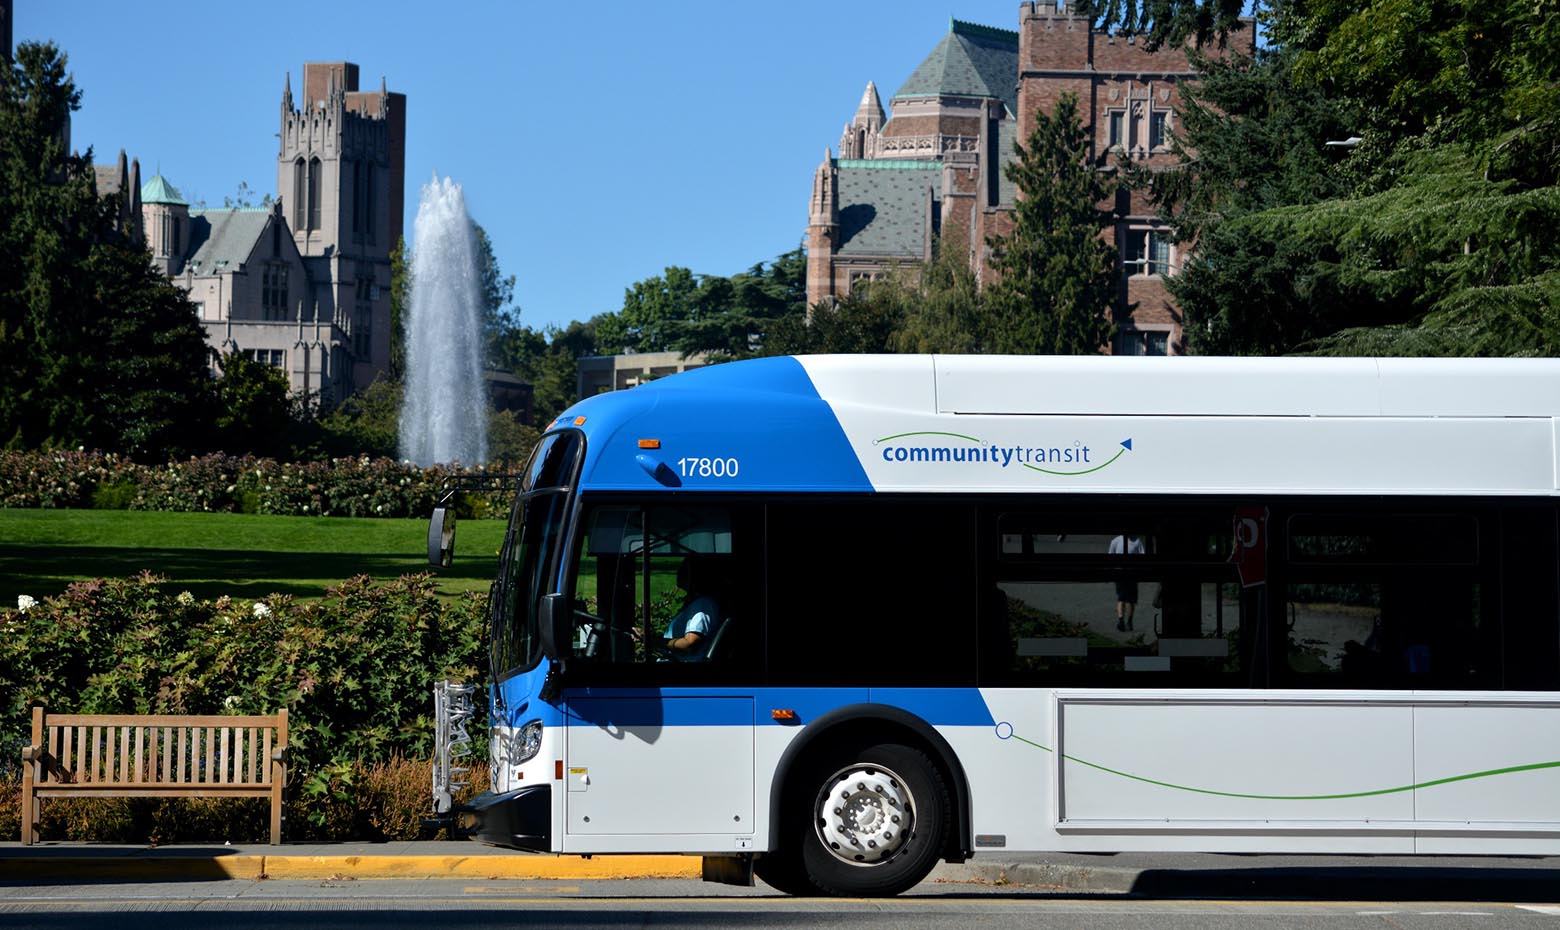 Visit our Online Open House to learn more about bus service and Link at Northgate in 2021